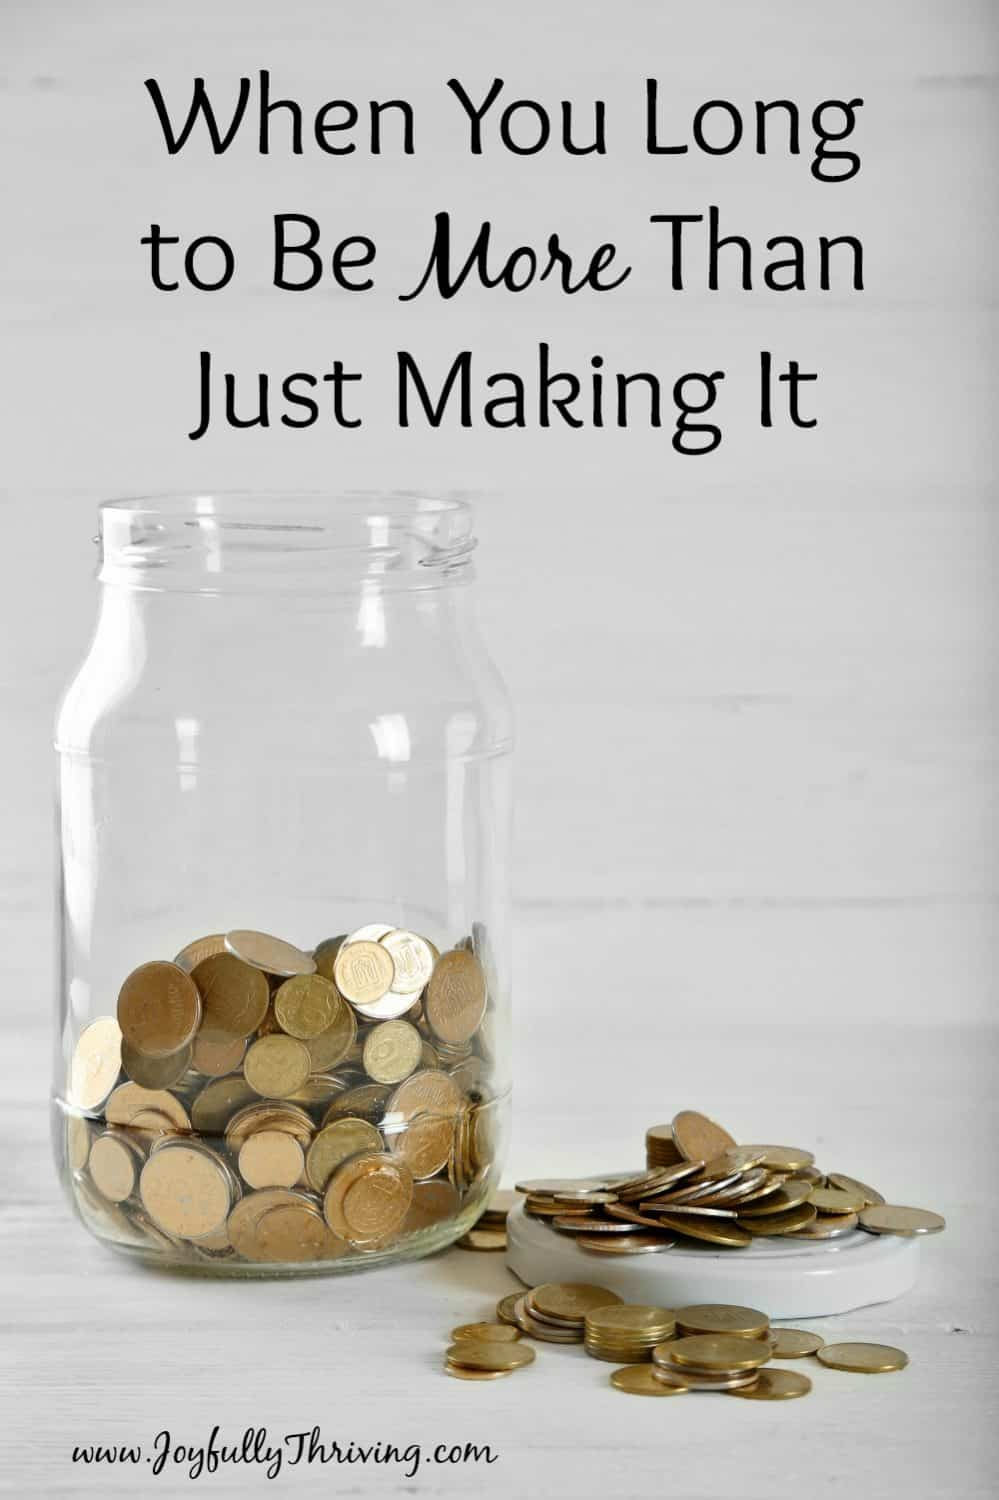 Are you frustrated by your finances? There is hope, especially if you long to be more than just making it. Here's some encouragement just for you!